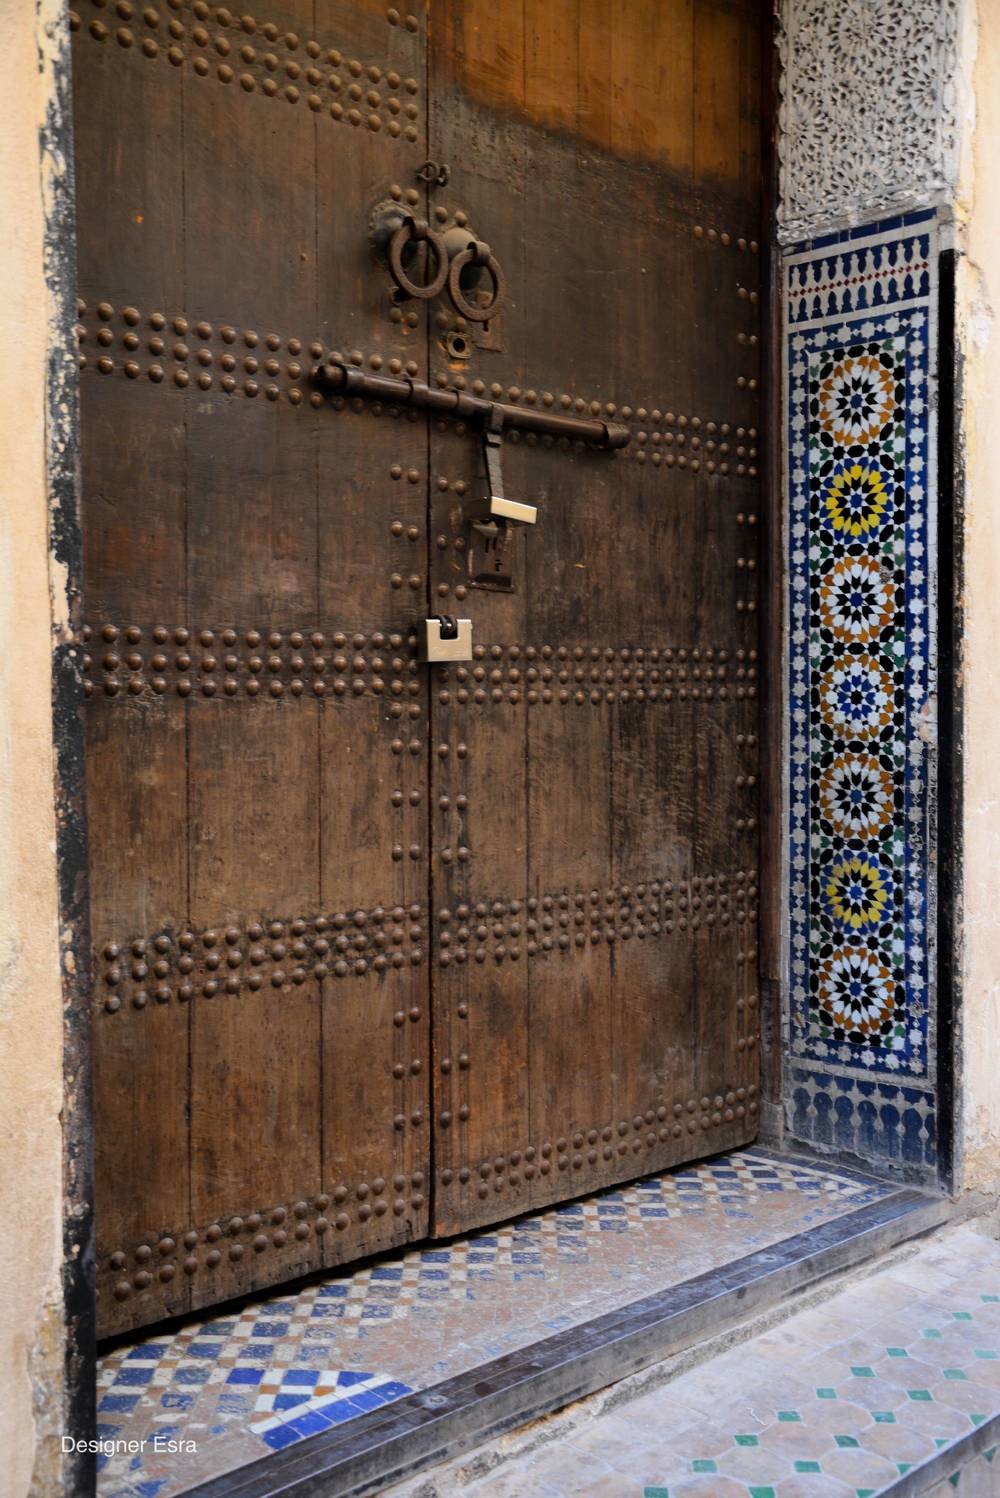 Islamic Patterns in Fez